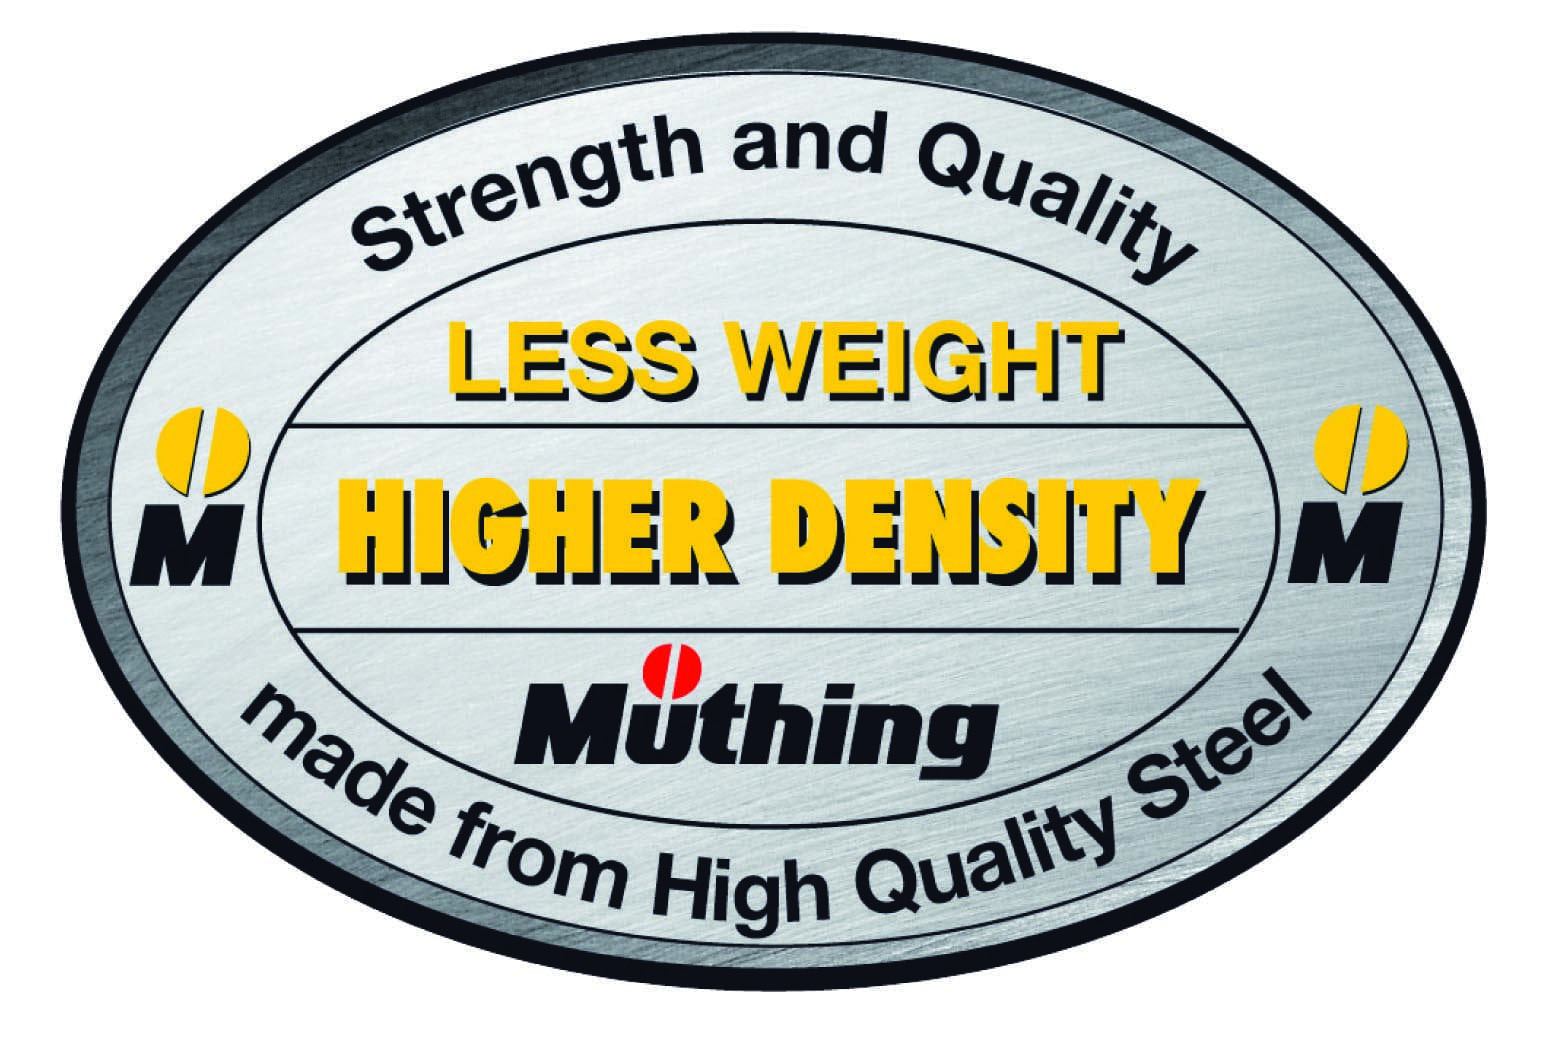 Less Weight - Higher Density Muthing